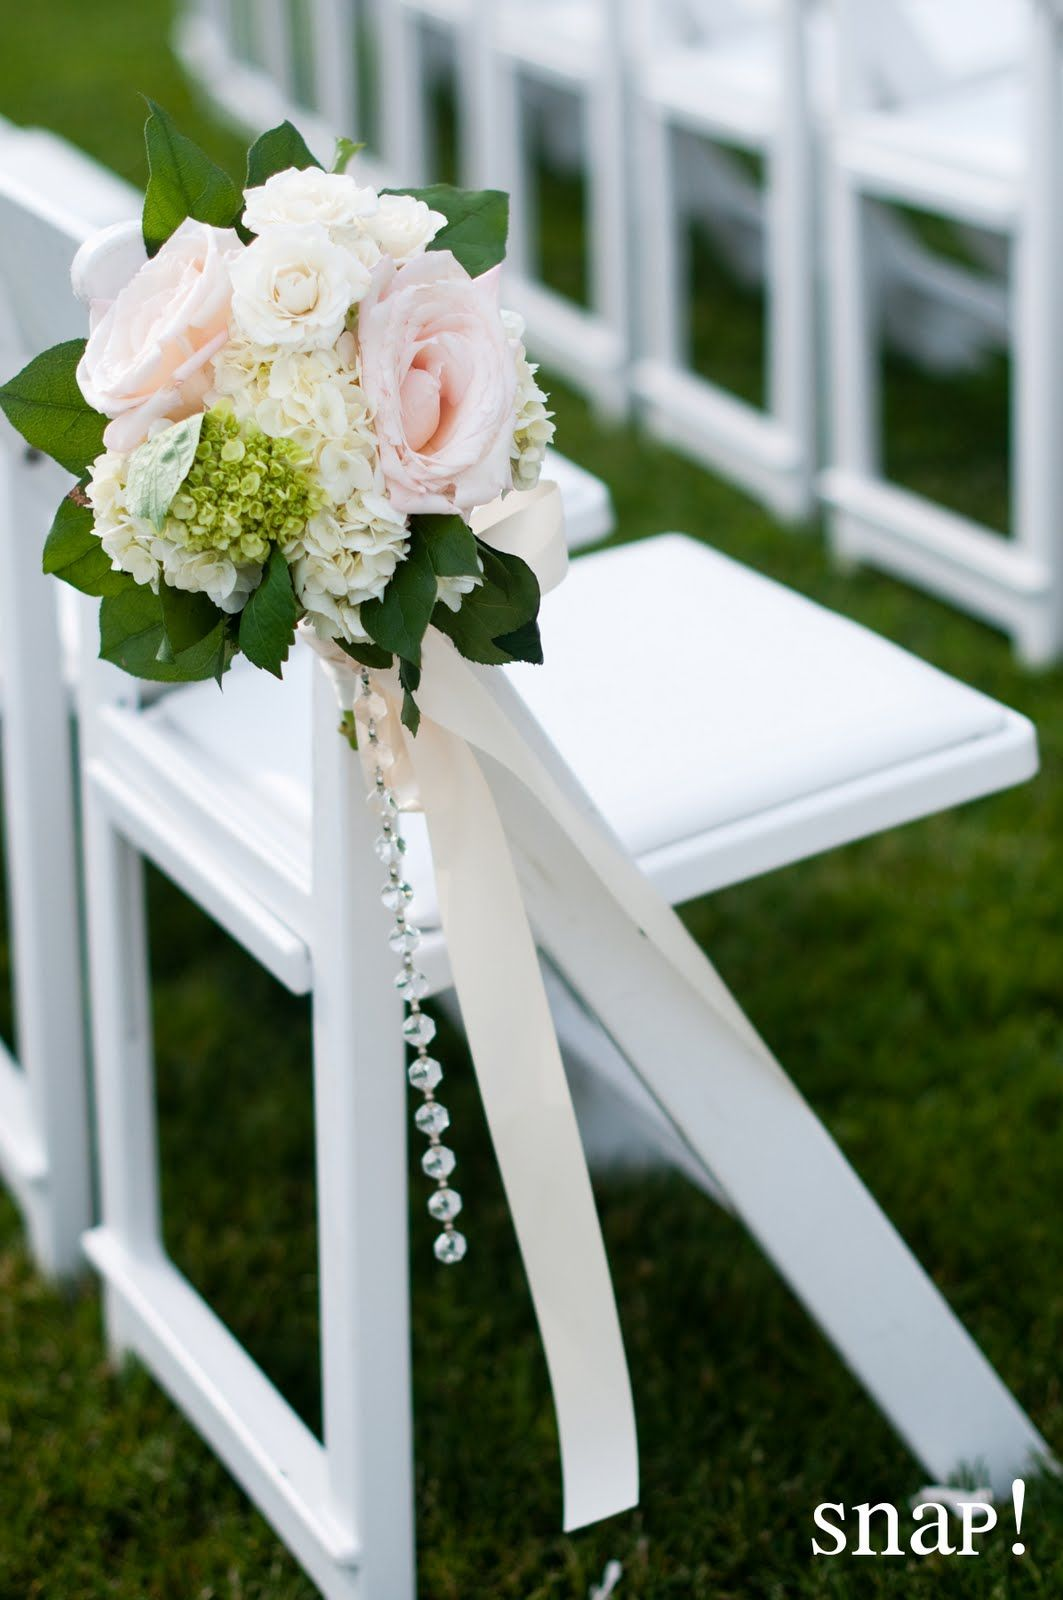 Flower Chair Pin By Kelly Bond Sevilla On I Do Pinterest Weddings